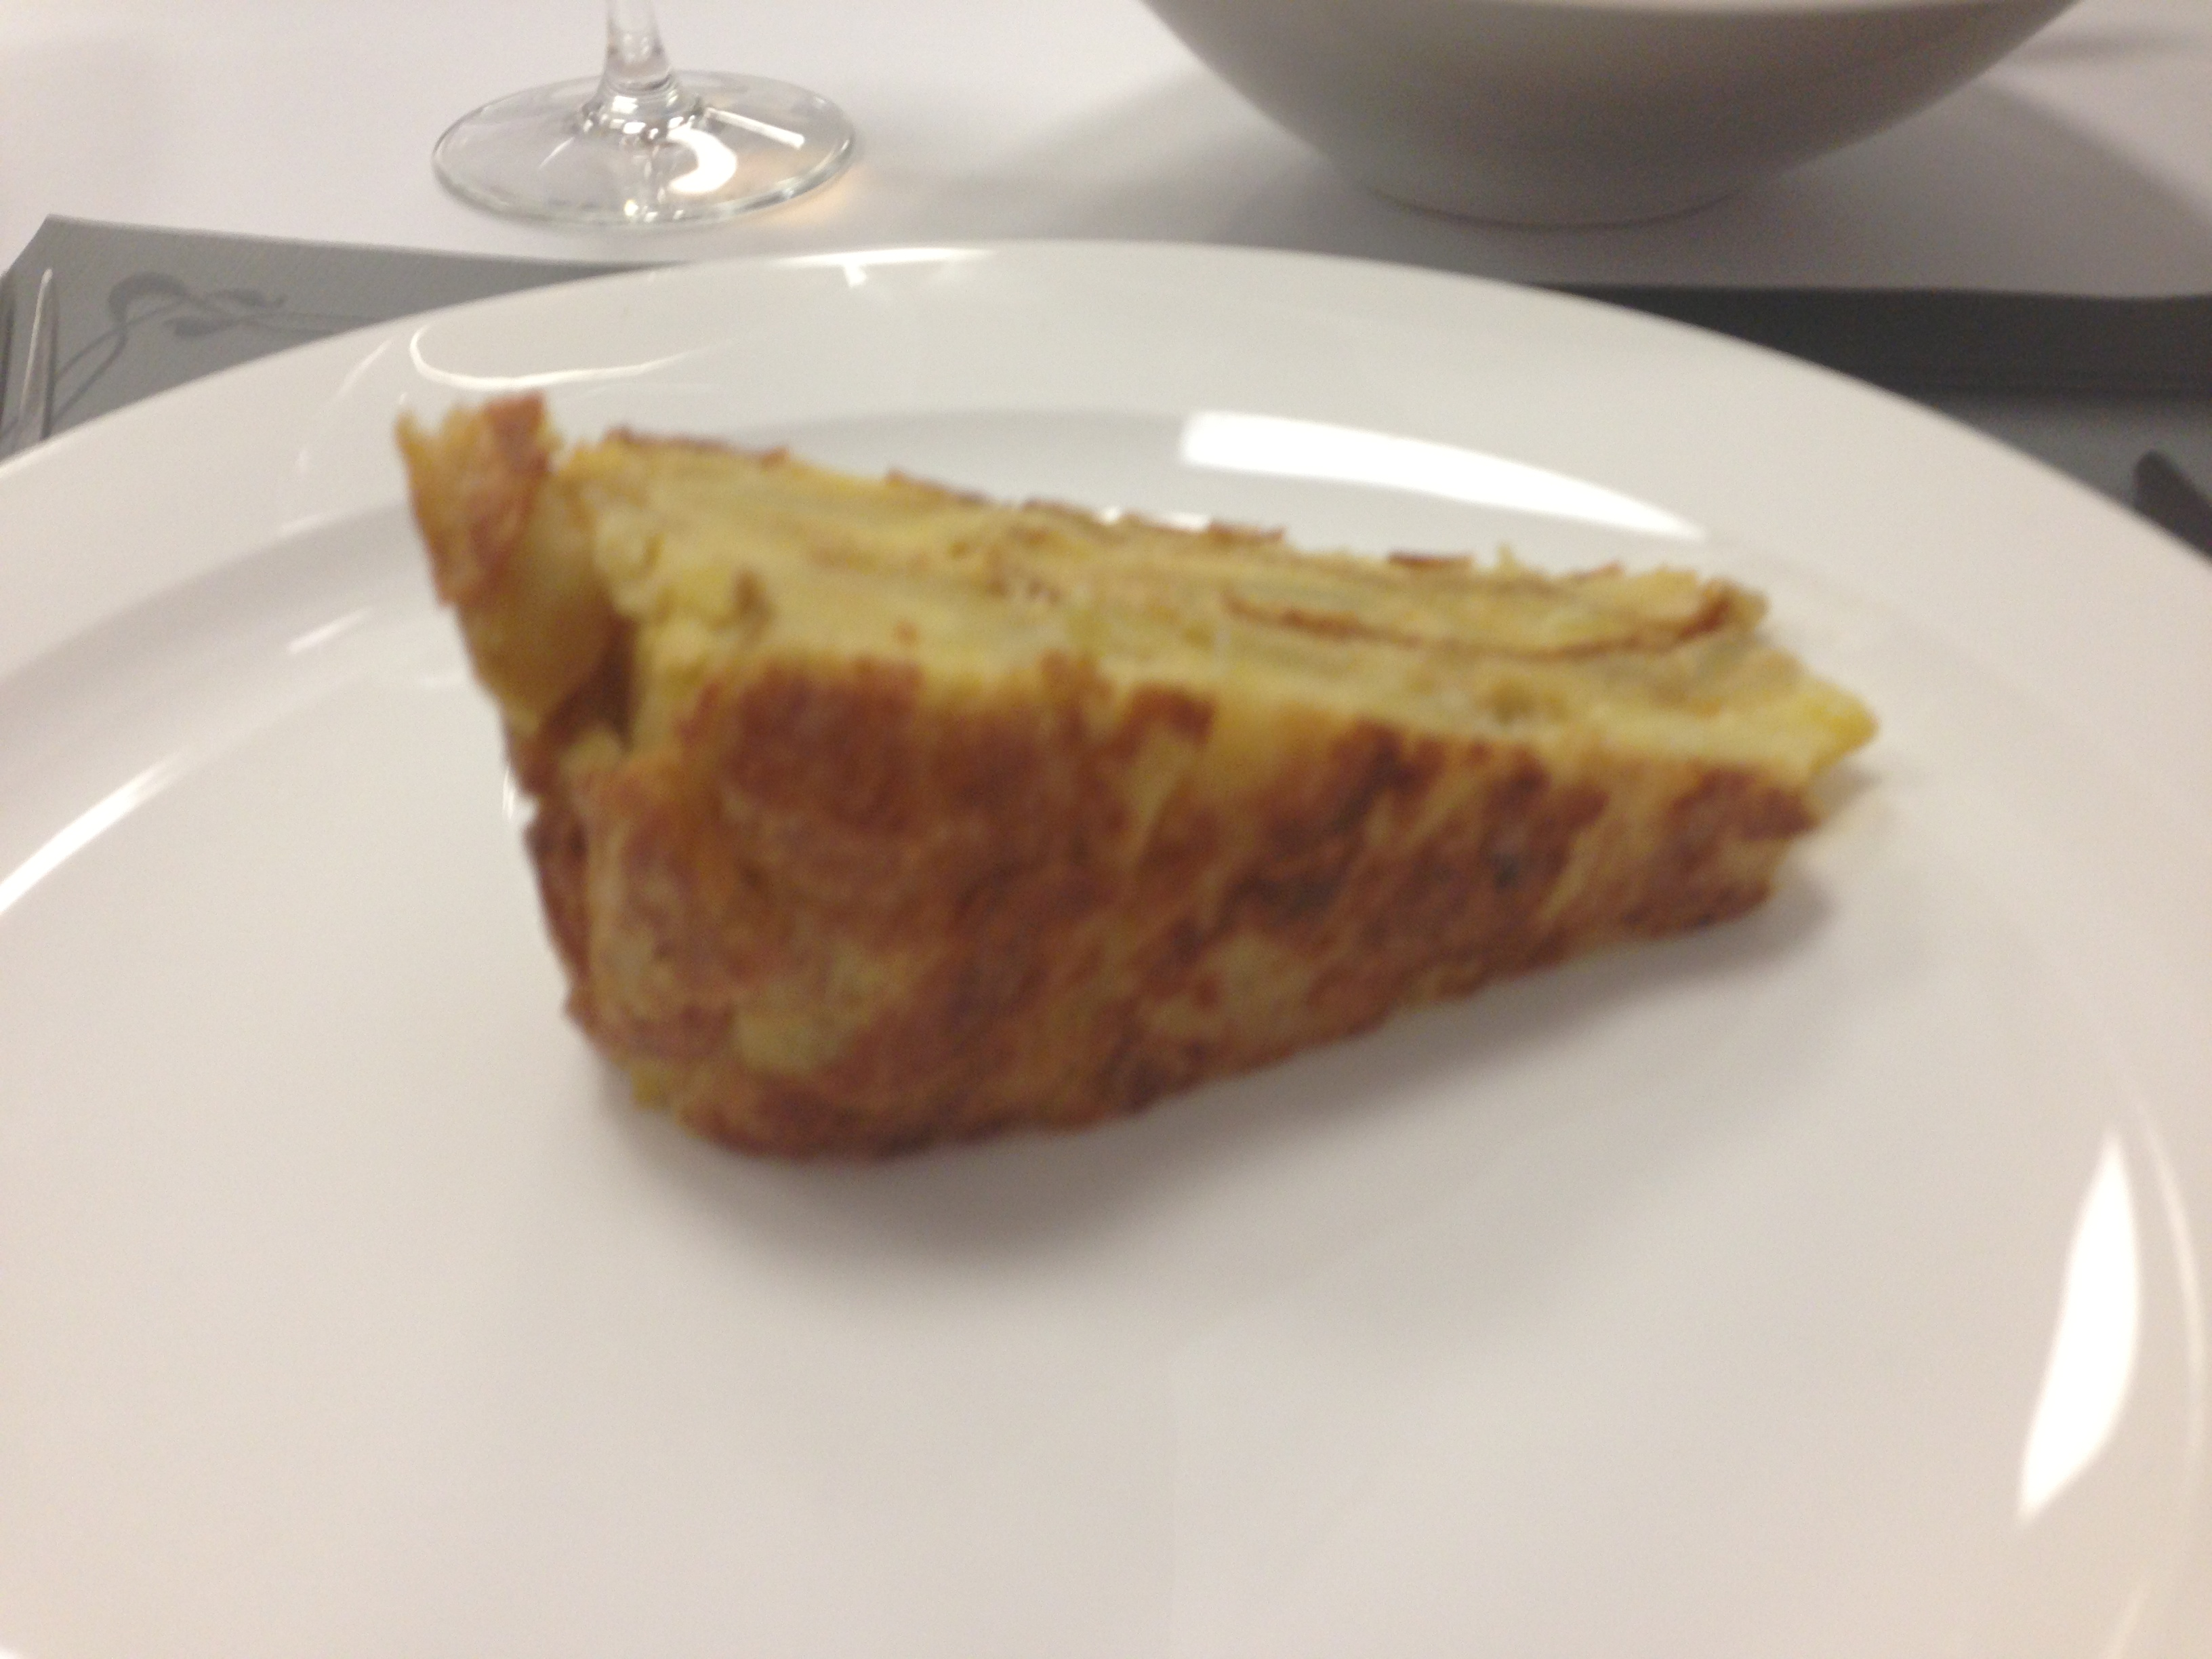 Tortilla Espanola is one of my favorite foods that is made out of eggs, olive oil, and potatoes :)